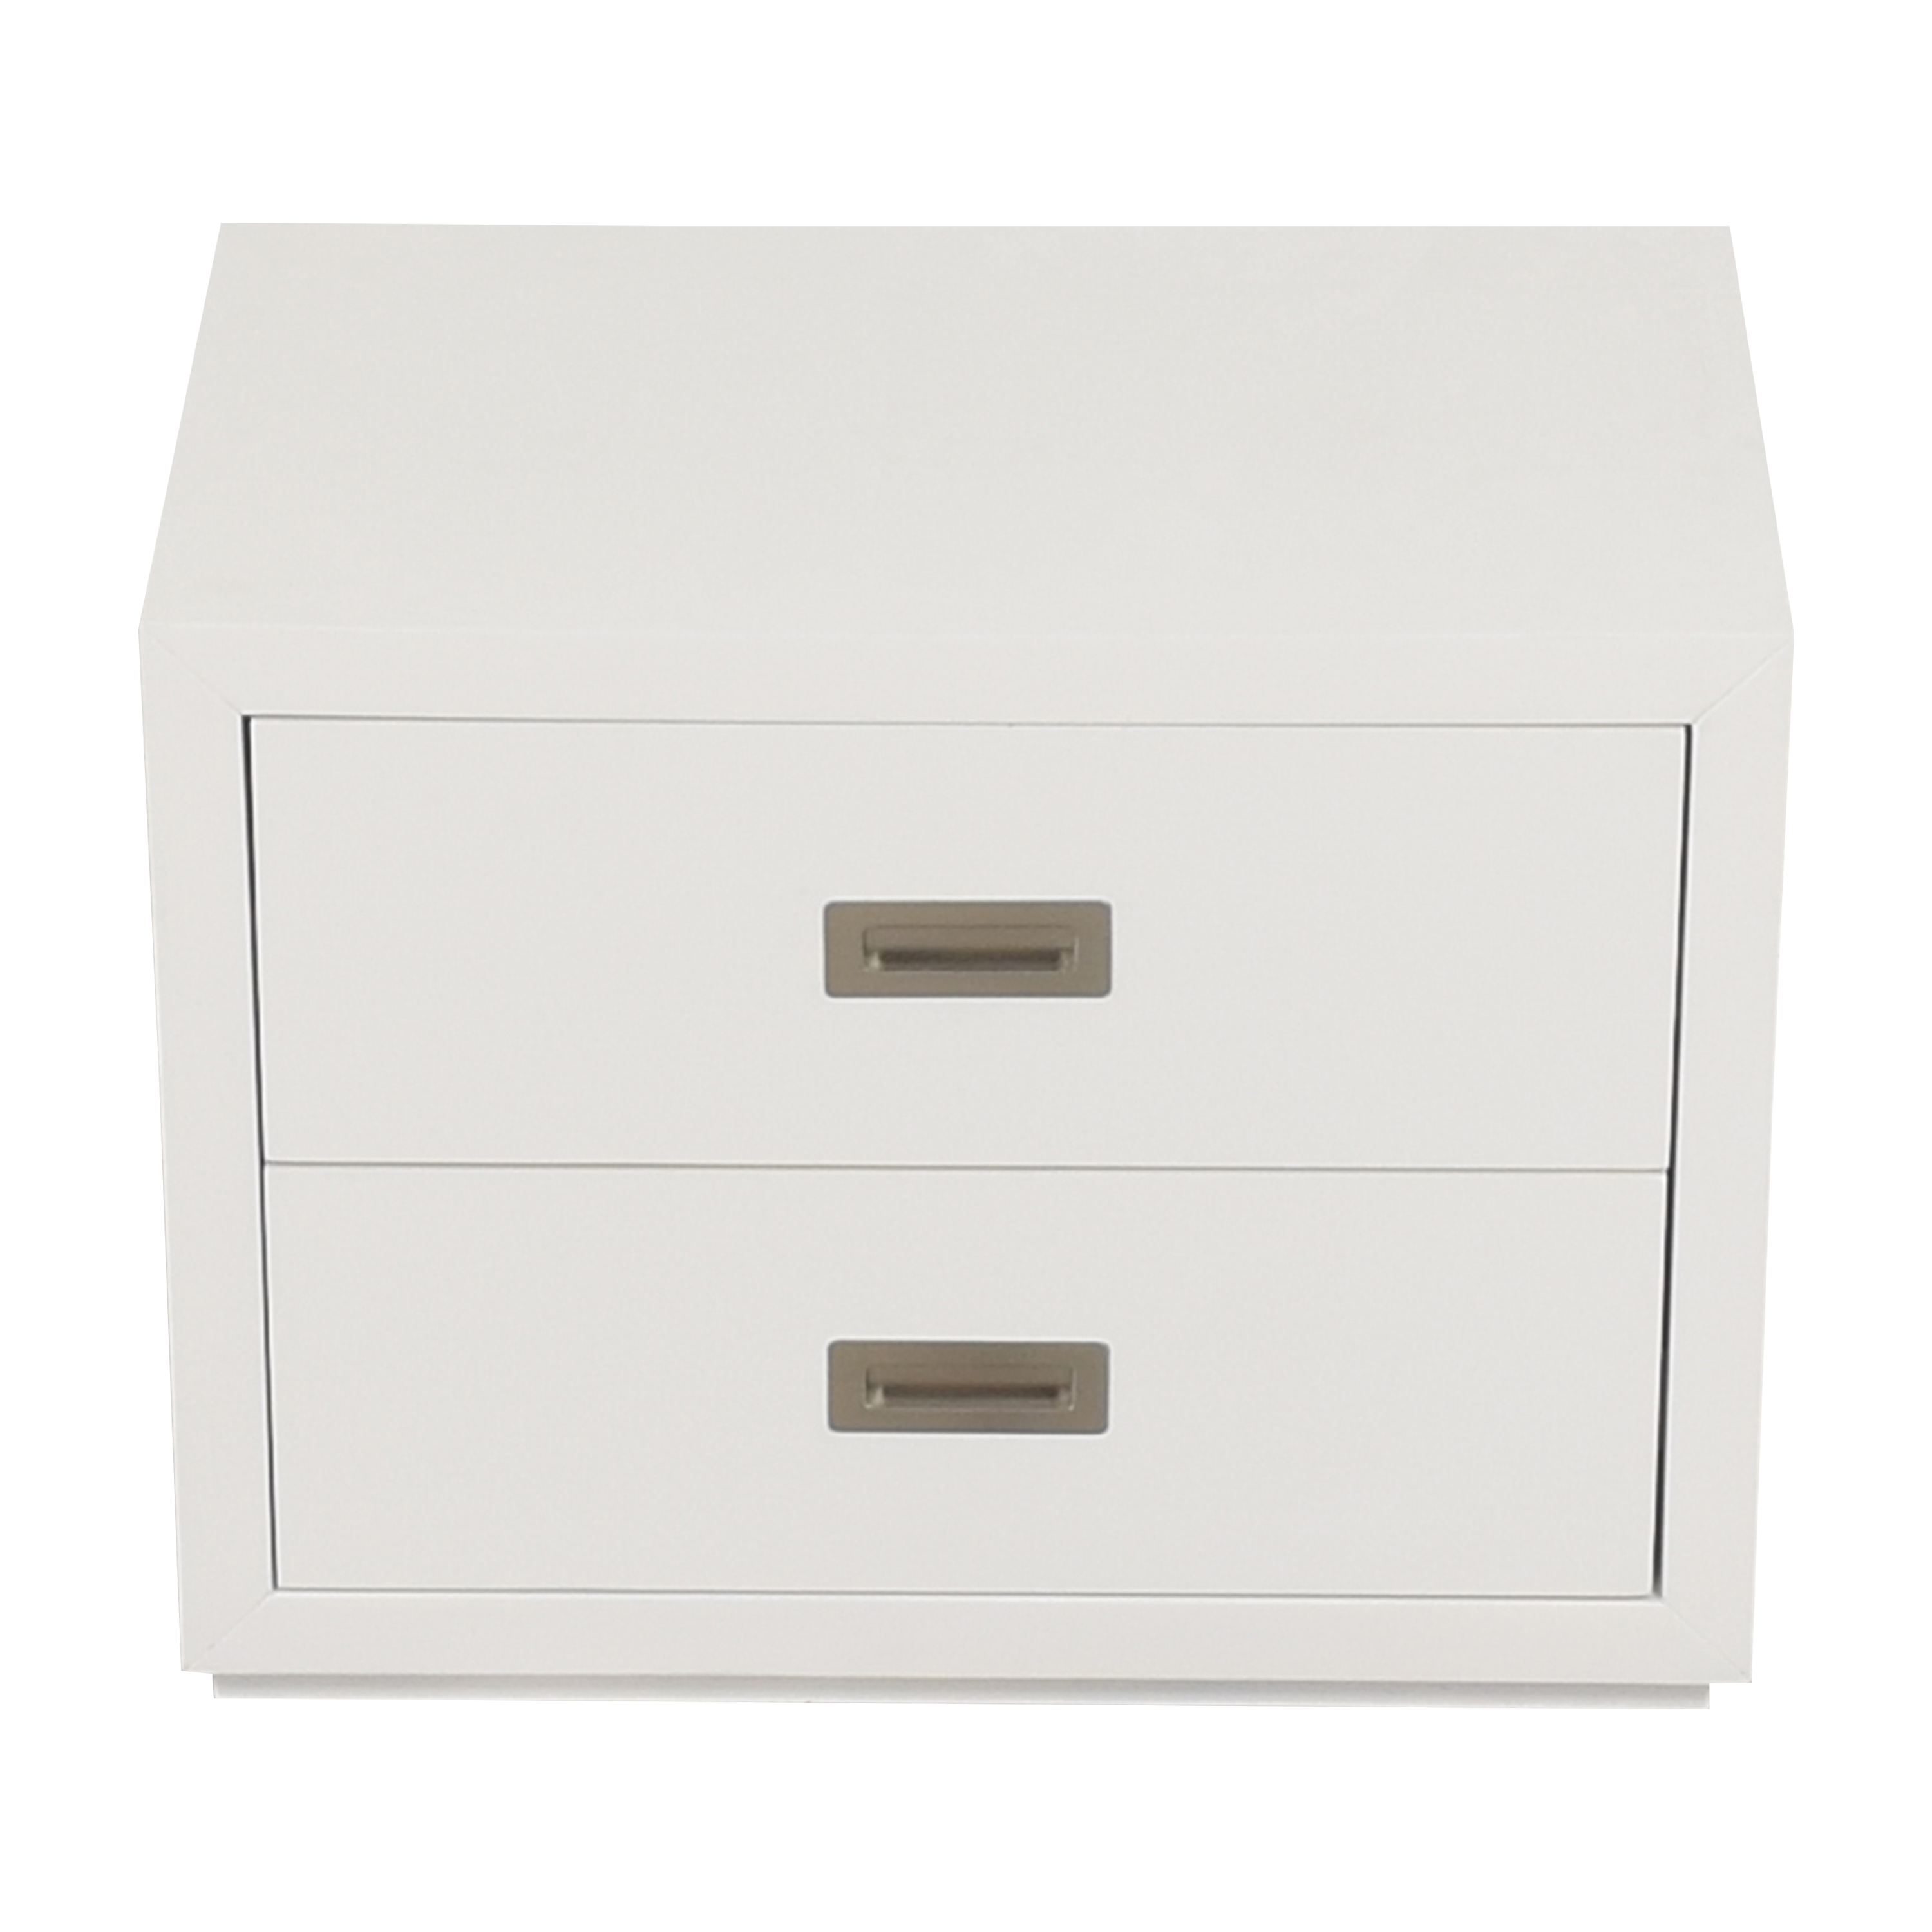 Crate & Barrel Crate & Barrel Aspect Modular Two Drawer Storage Unit End Tables